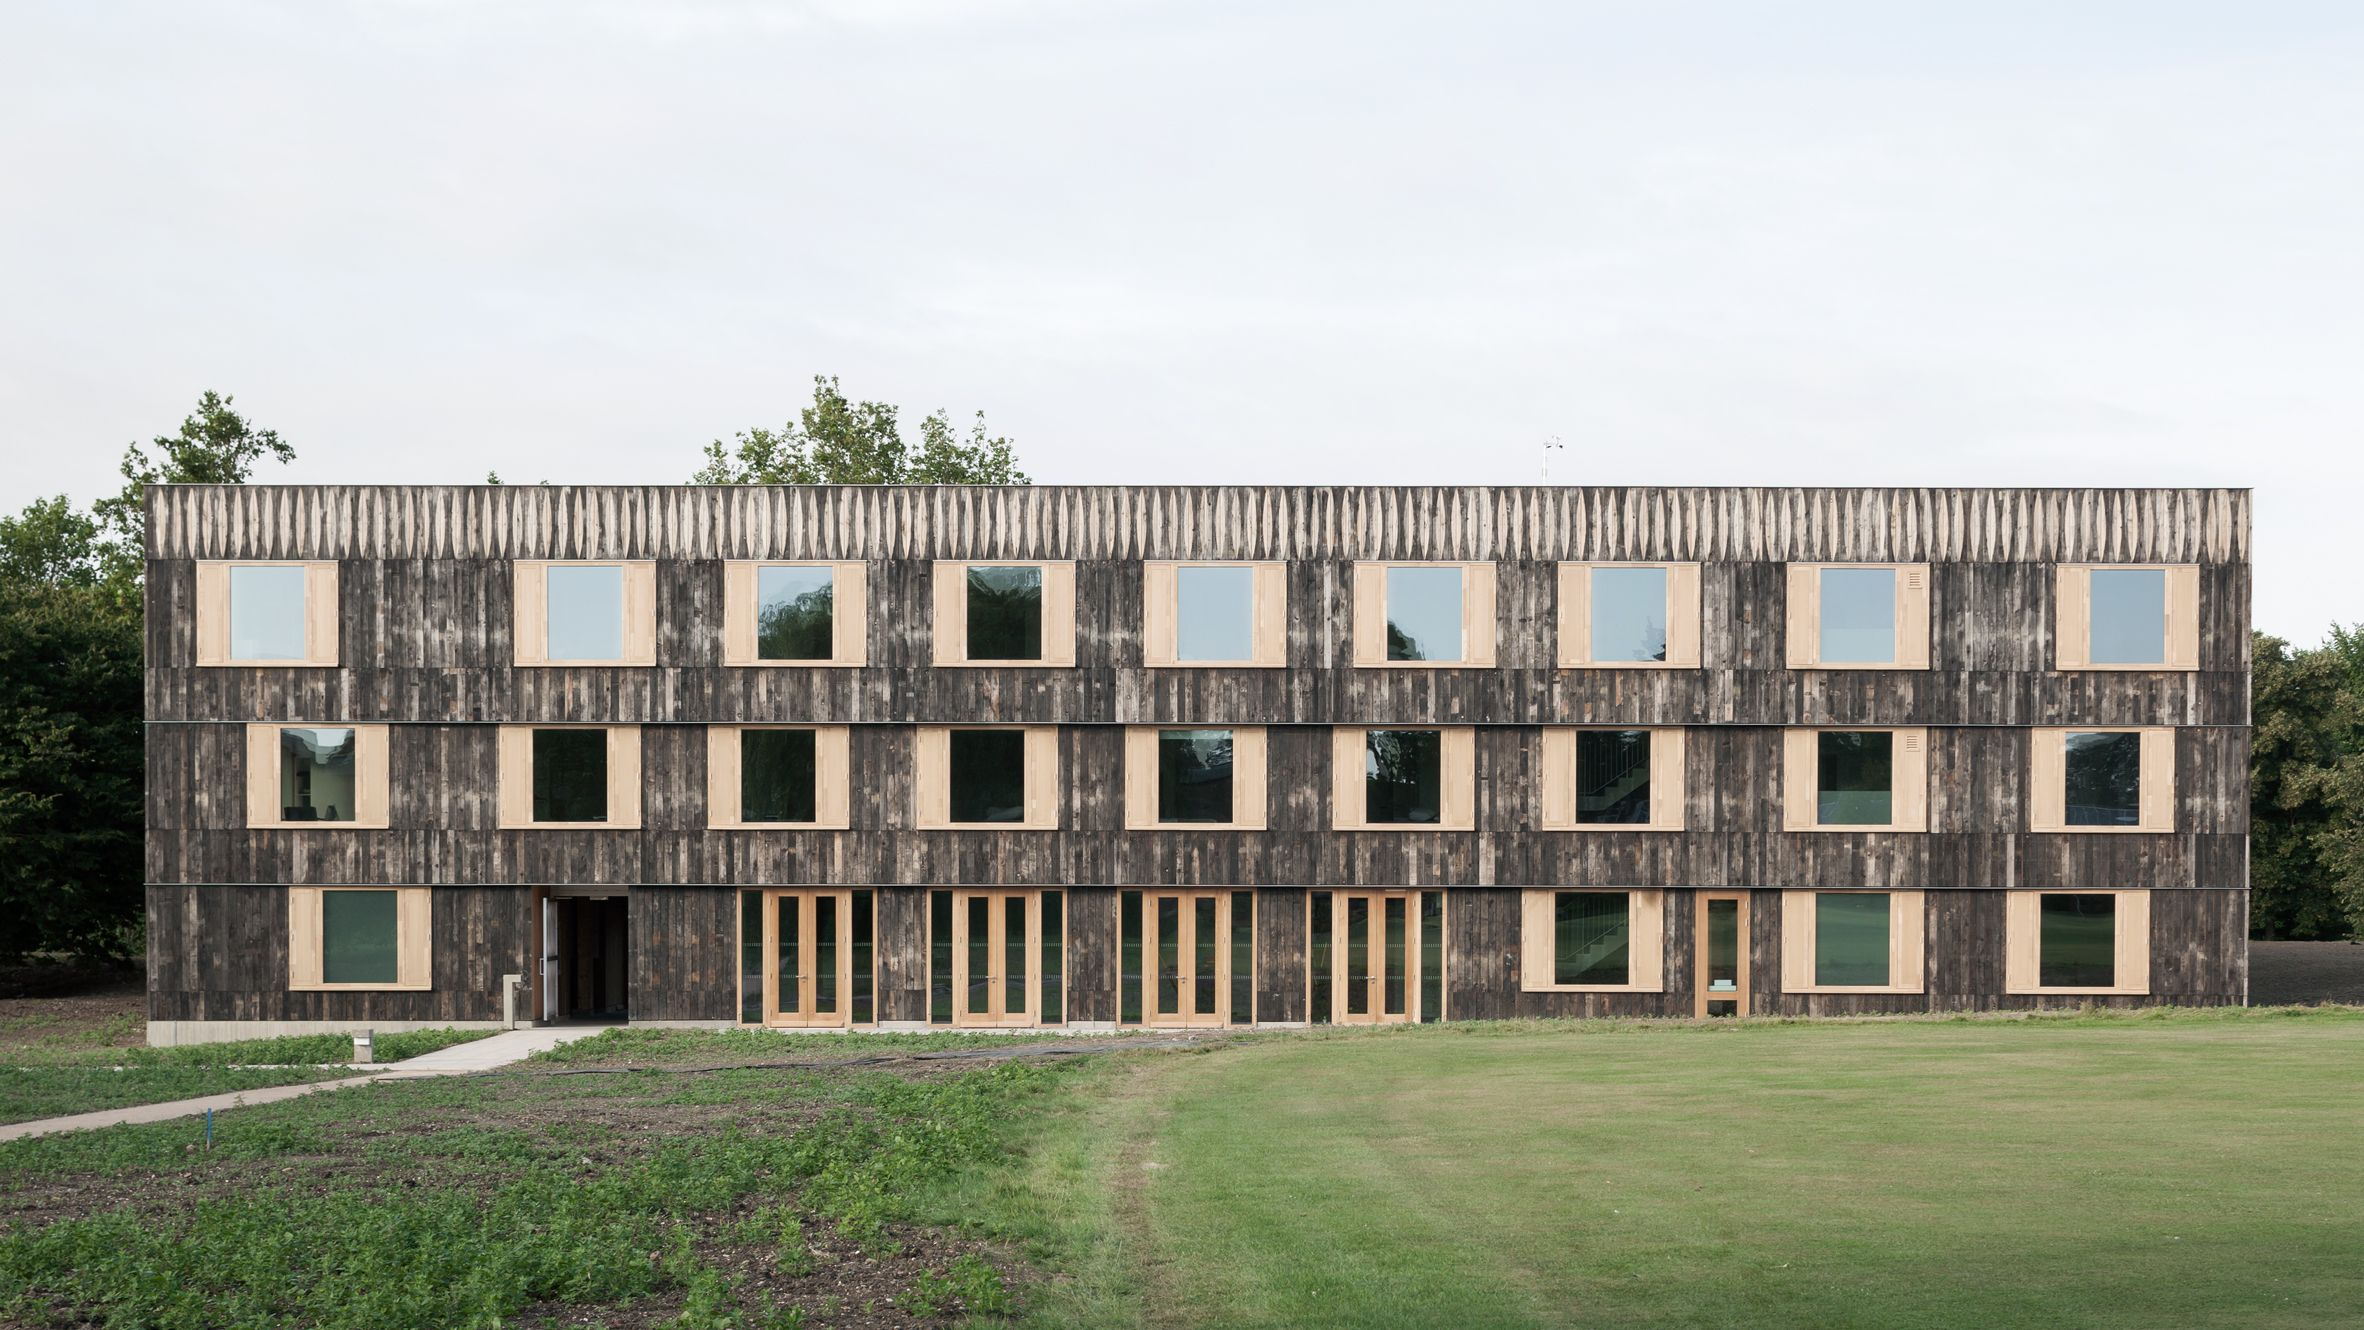 6a Architects Adds Timber Clad Halls To University Of Cambridge Campus